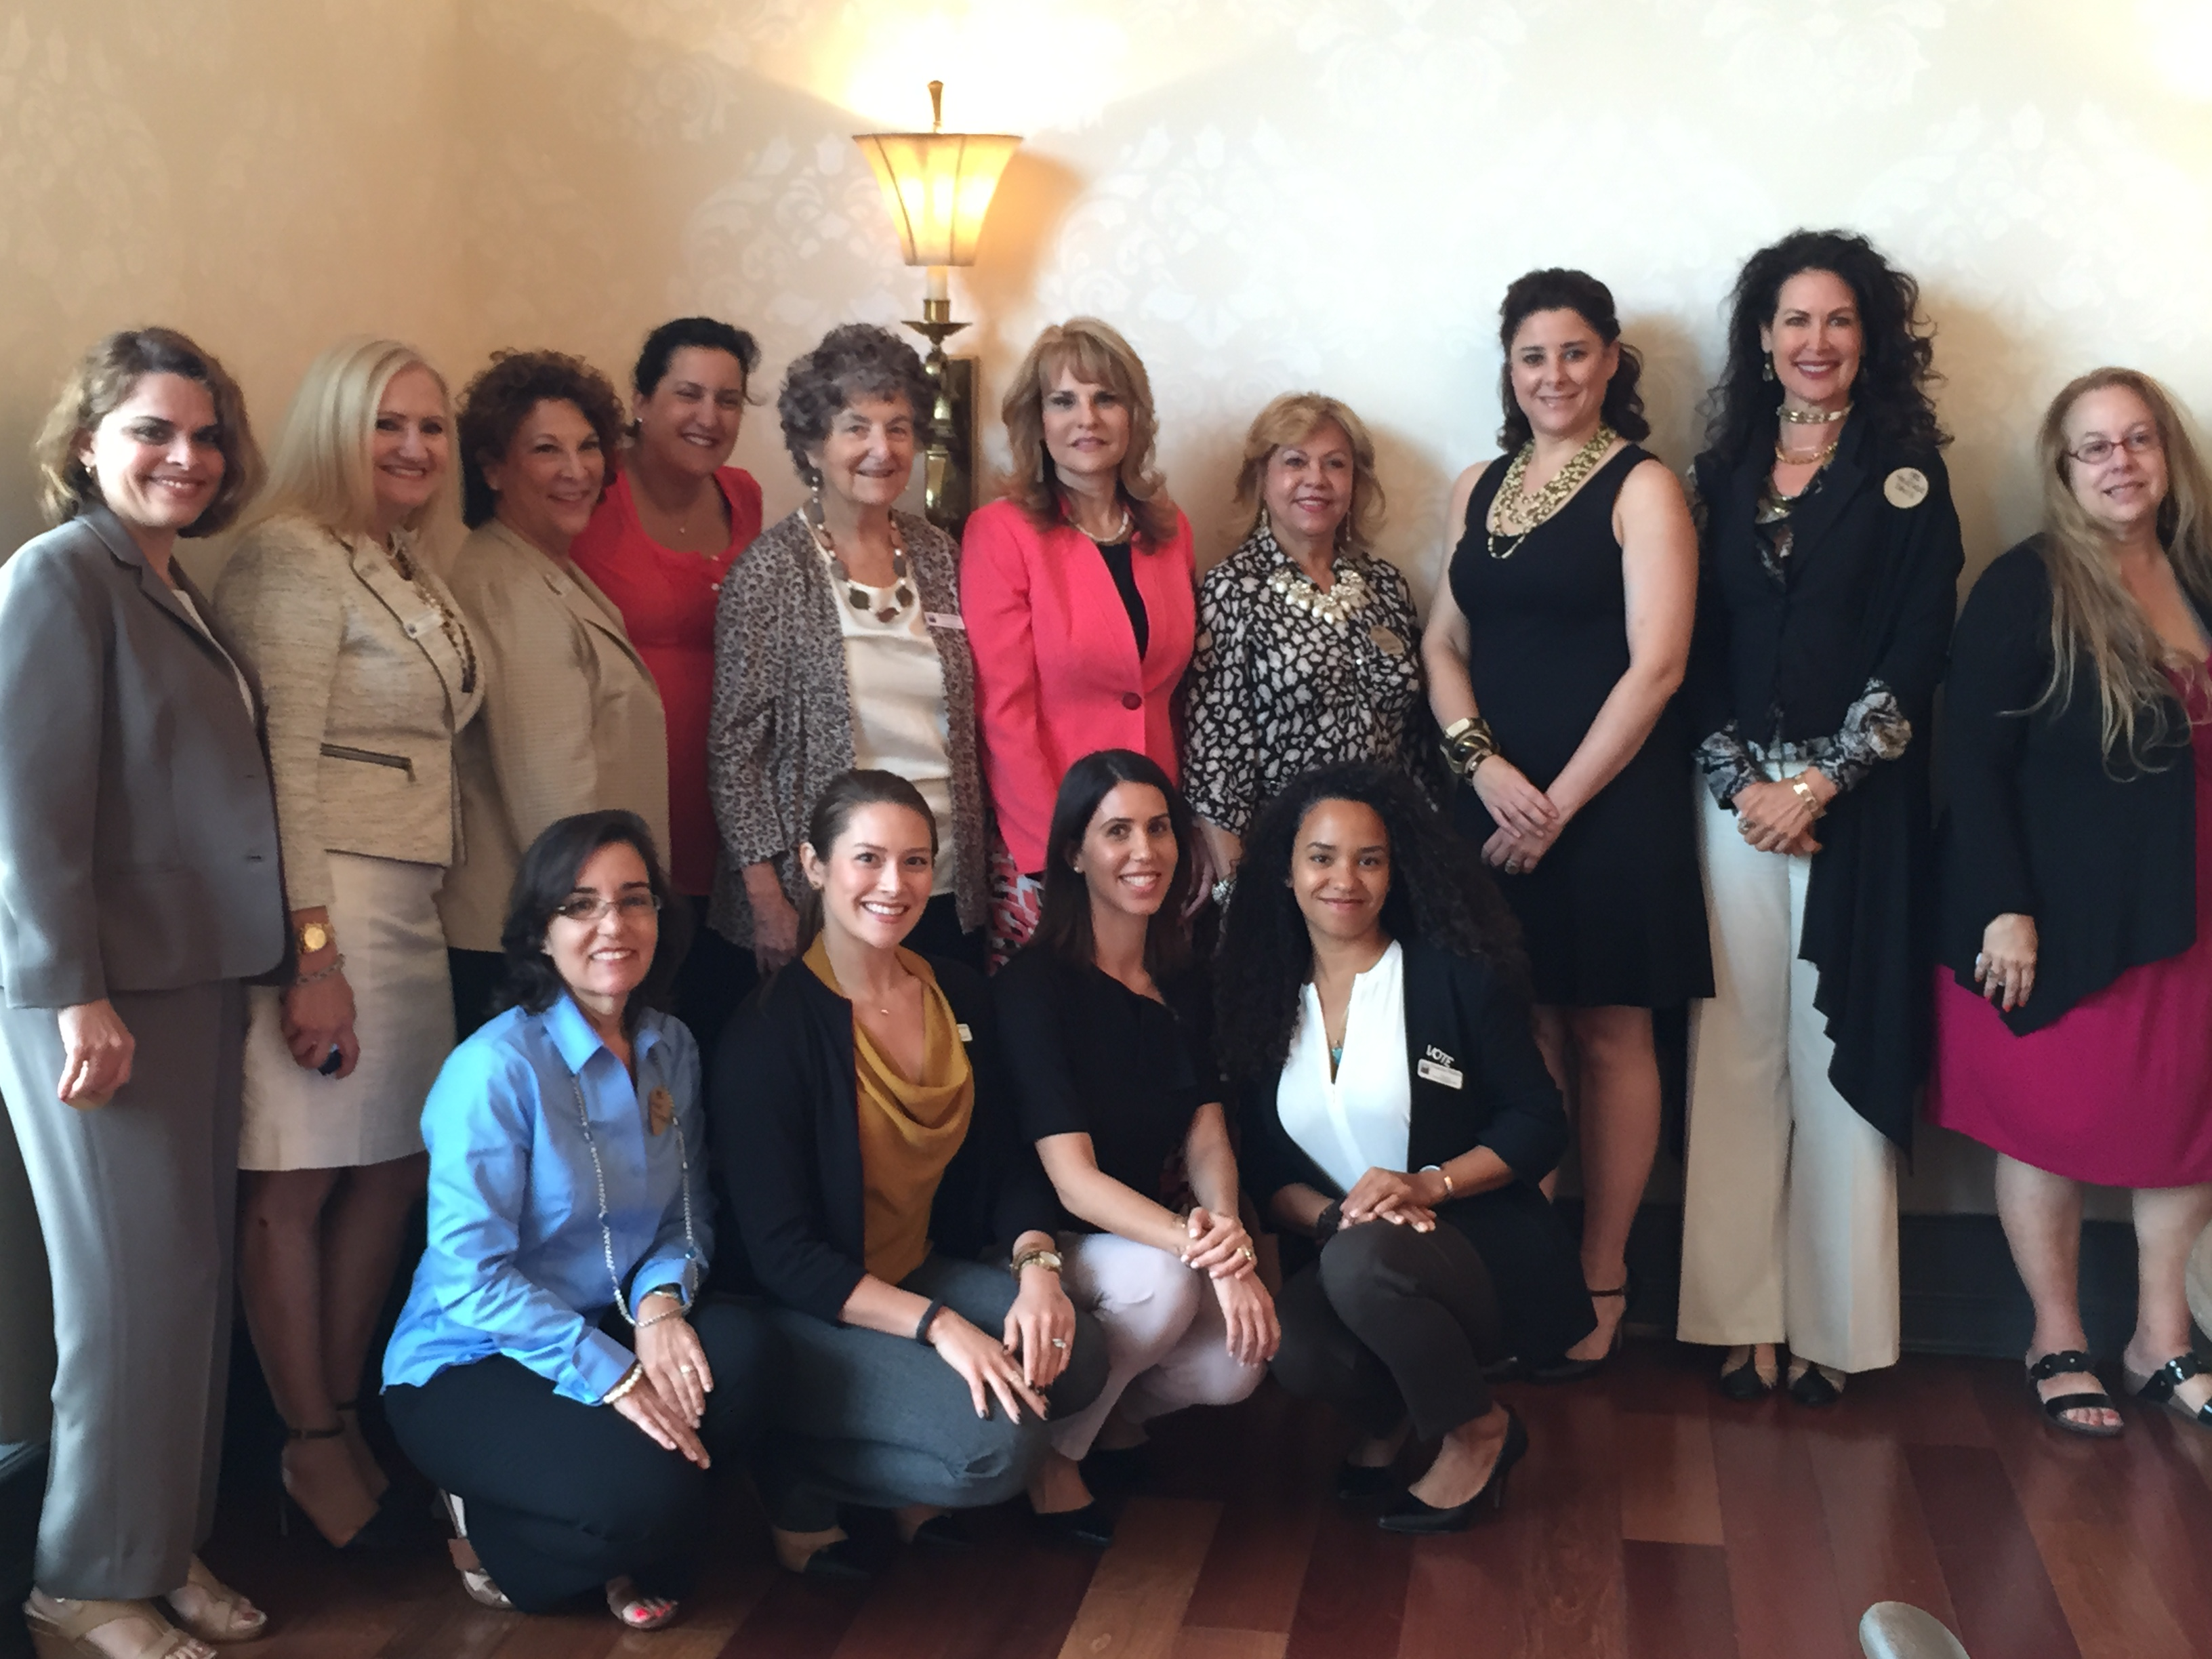 Dr. Triay selected as the Women that Shine 2015 honoree!